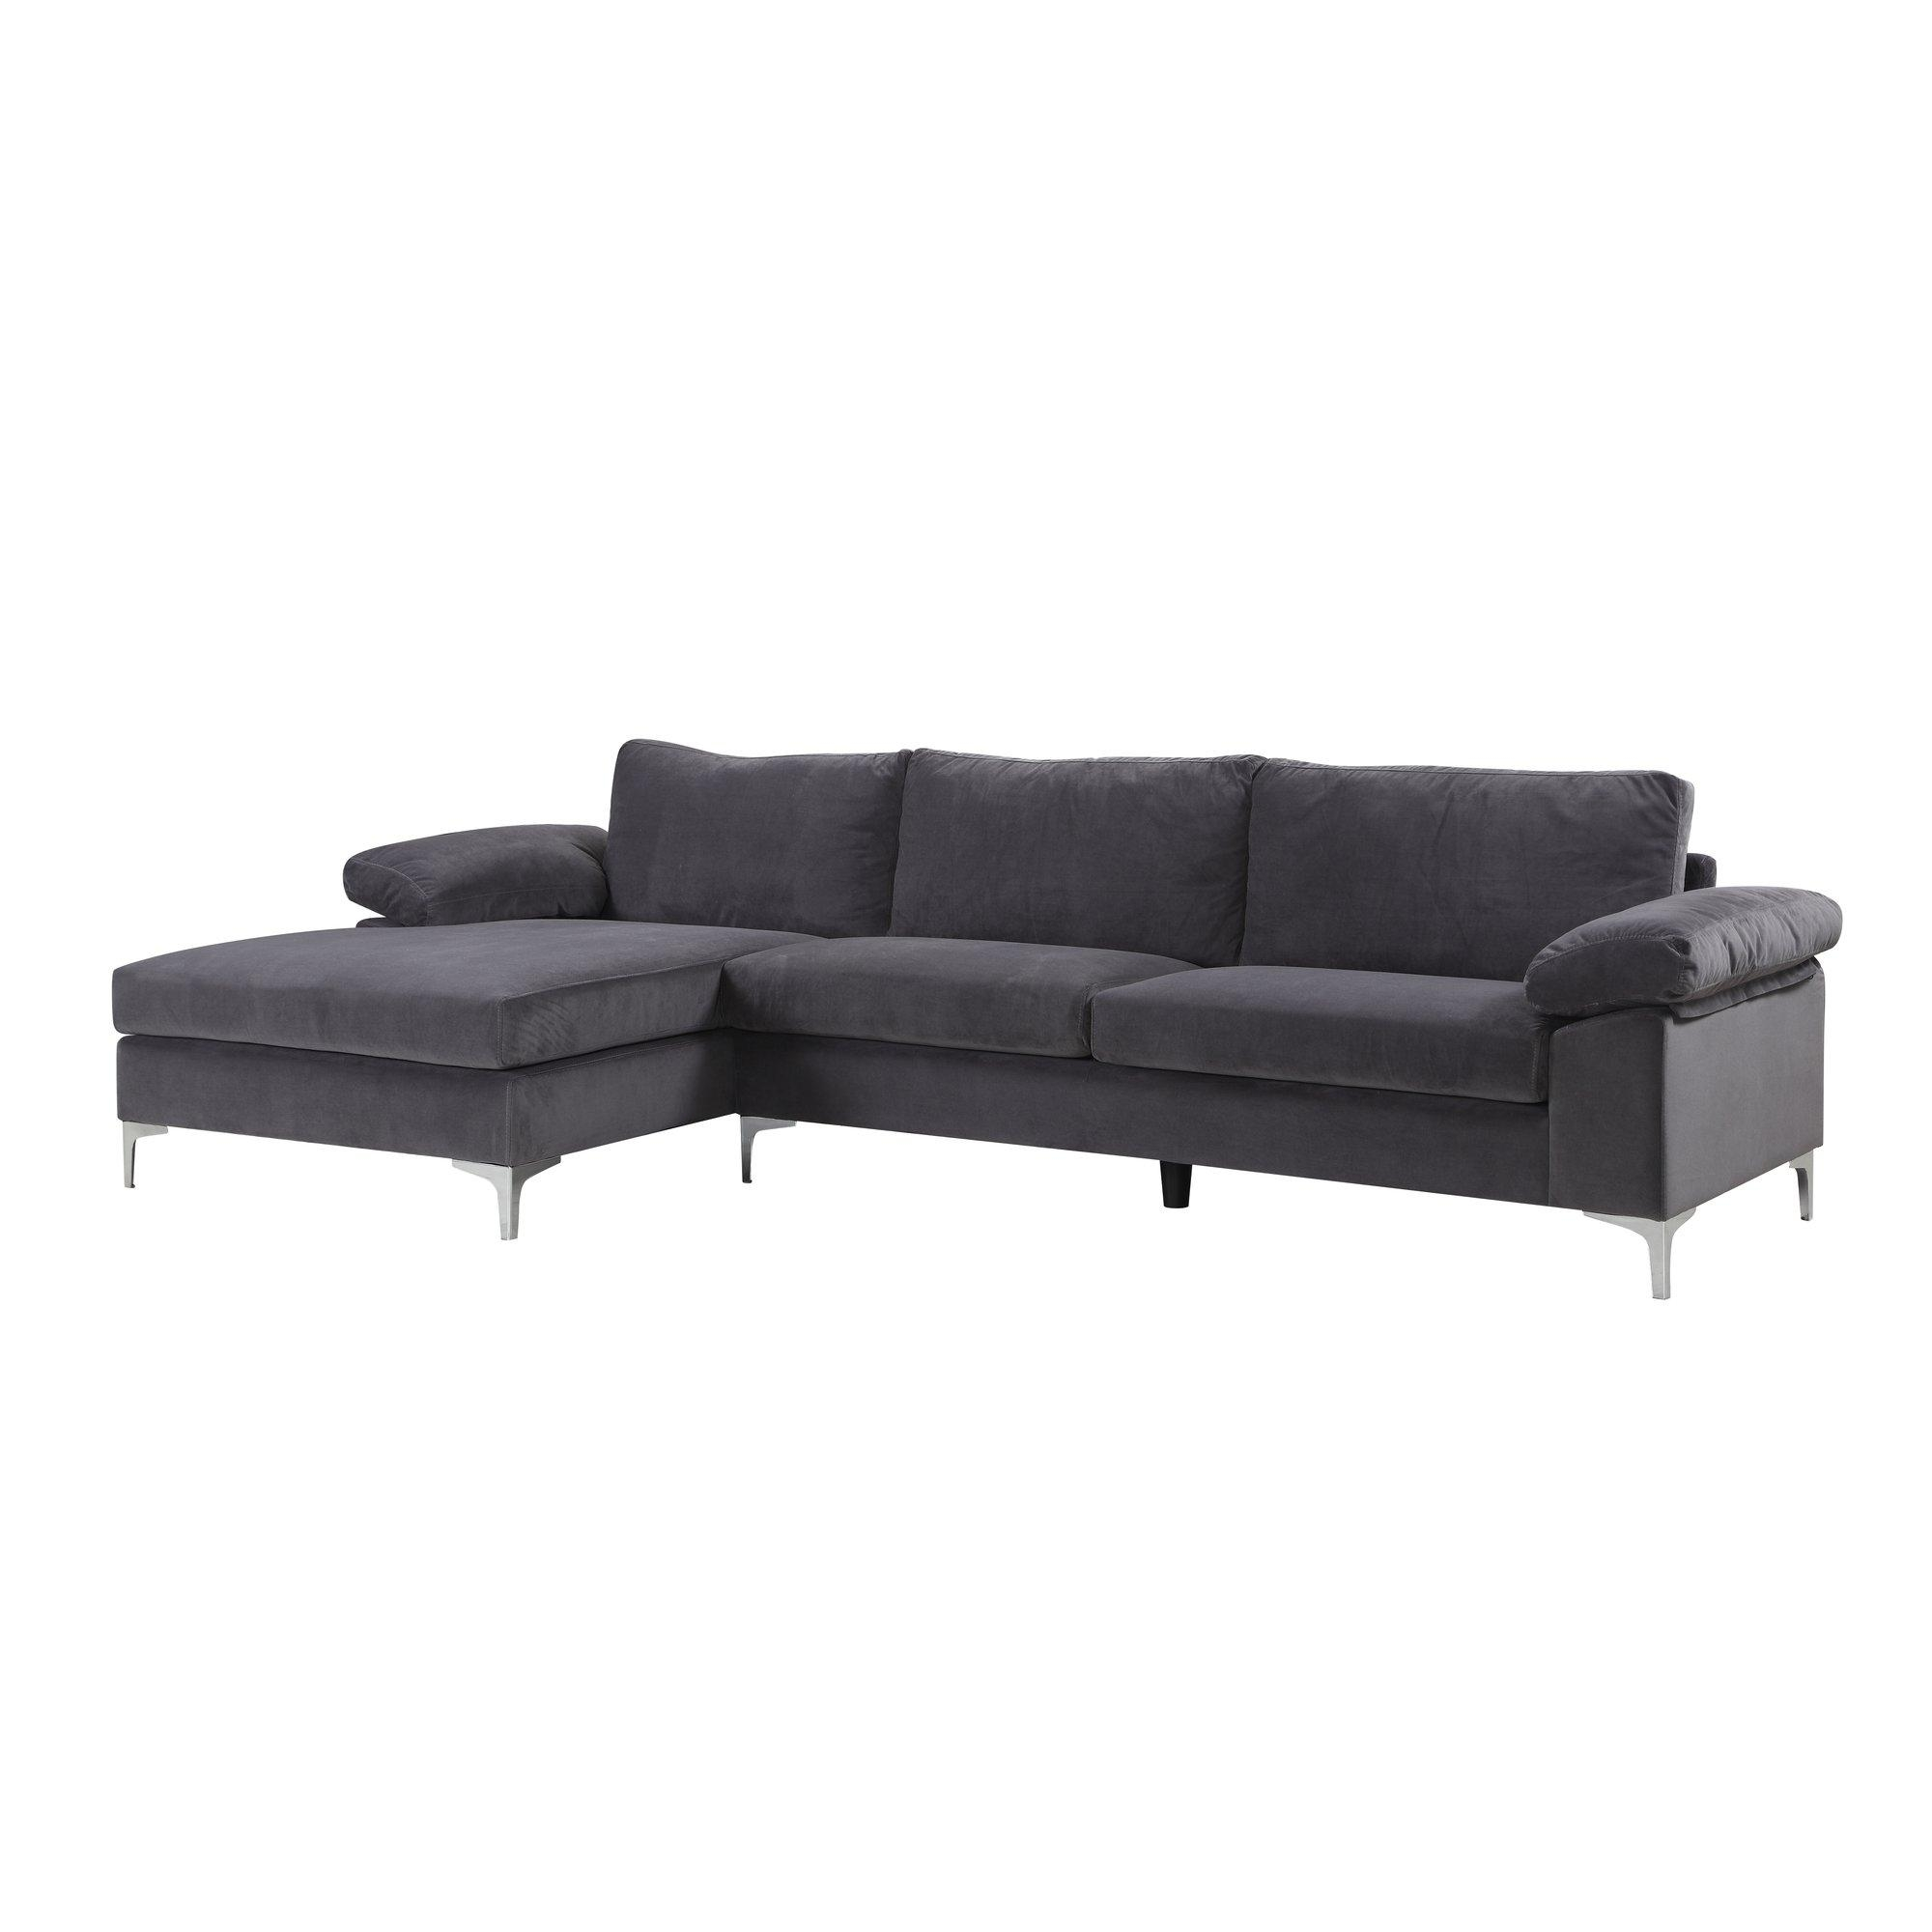 Furniture: Classic And Traditional Style Velvet Sectional Sofa For Inside Velvet Sofas Sectionals (Image 7 of 20)